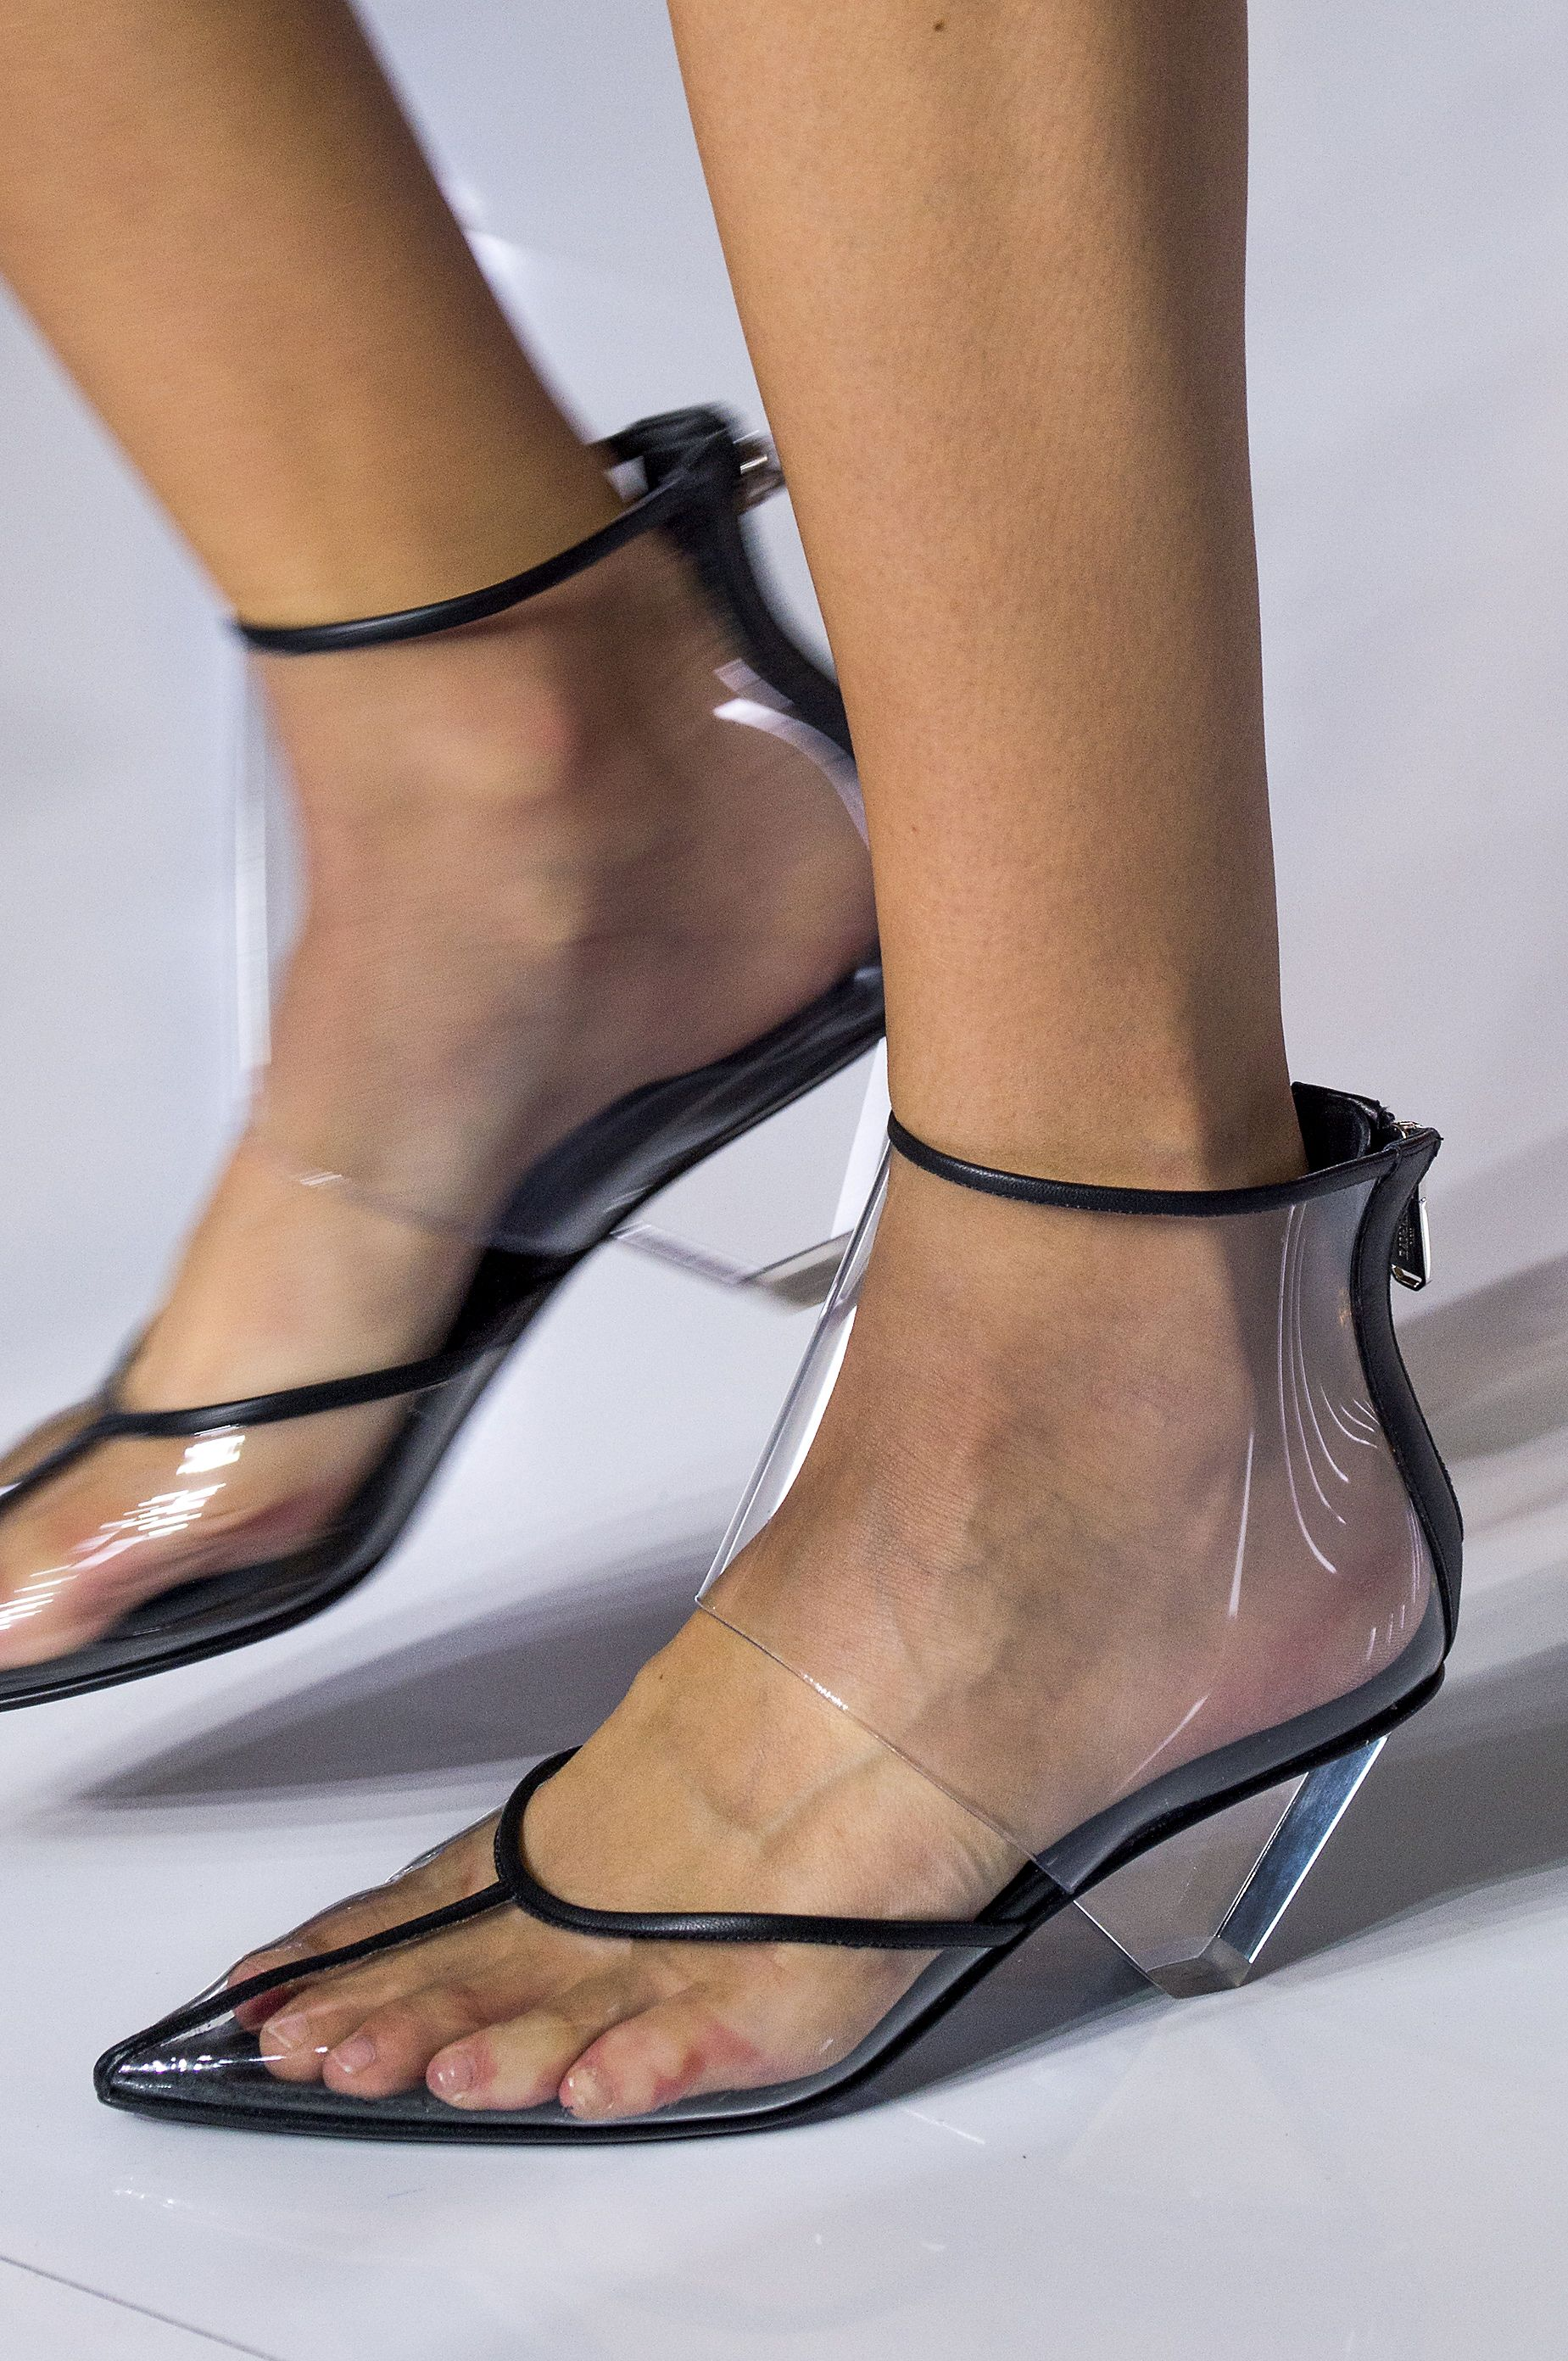 Spring Summer 100 Shoe Ss19 Shoes Sandals 2019 And Trends – For Best 7vYbI6gymf